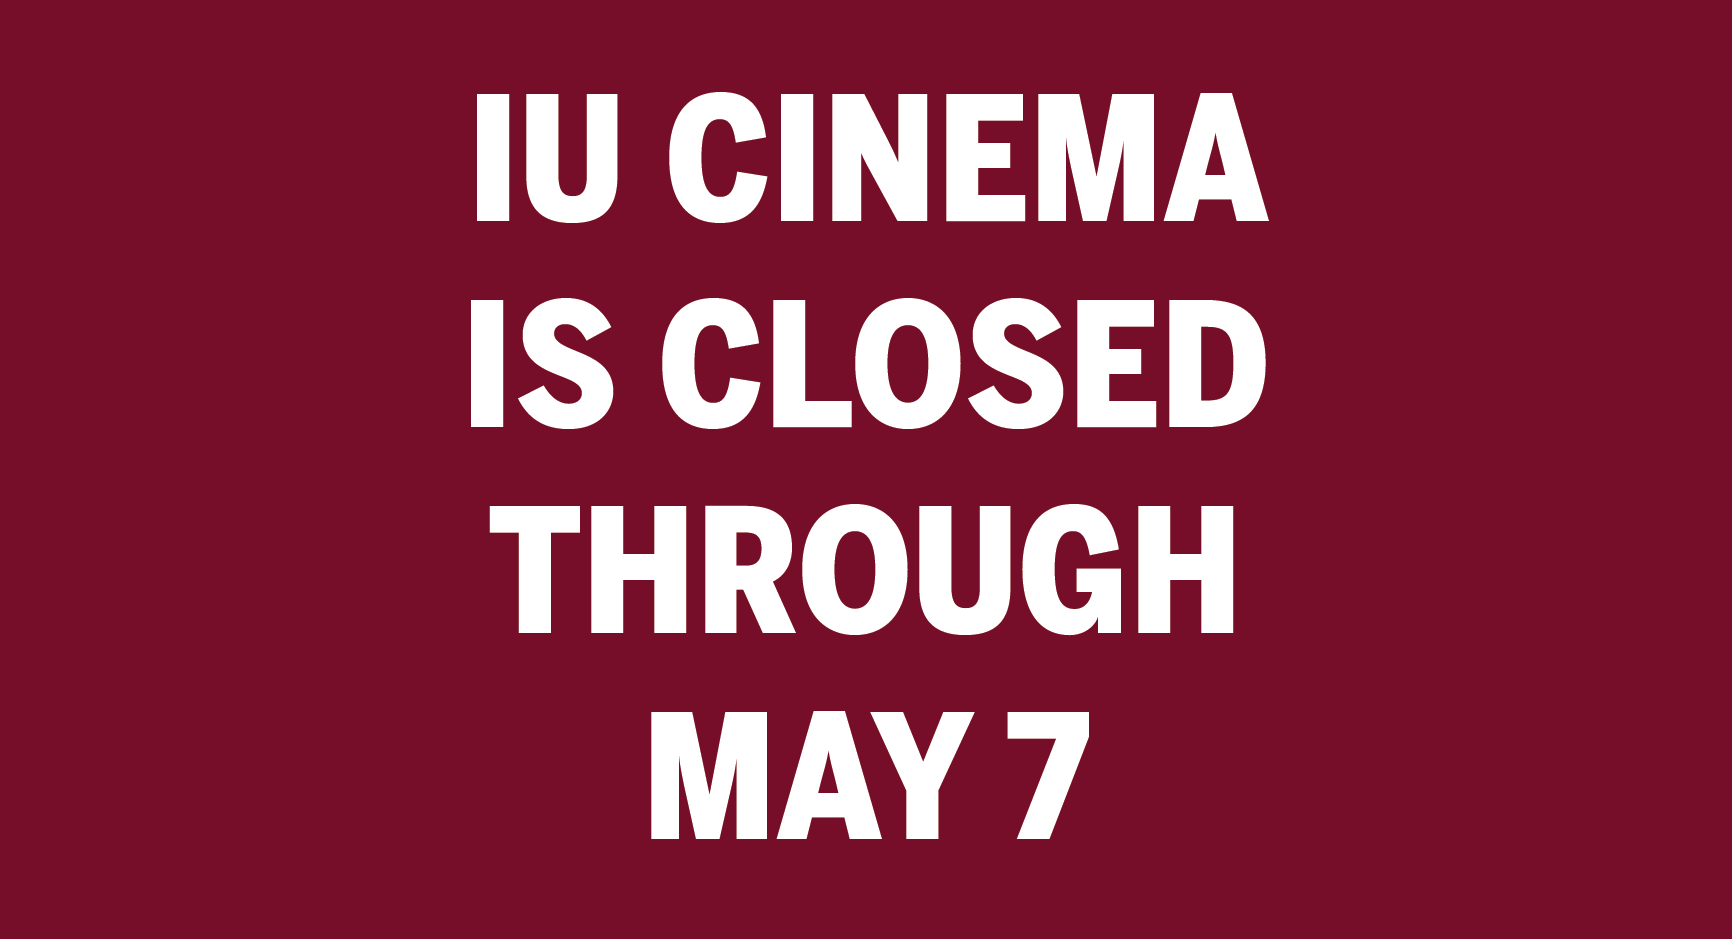 Still image from IU Cinema is closed through May 7.